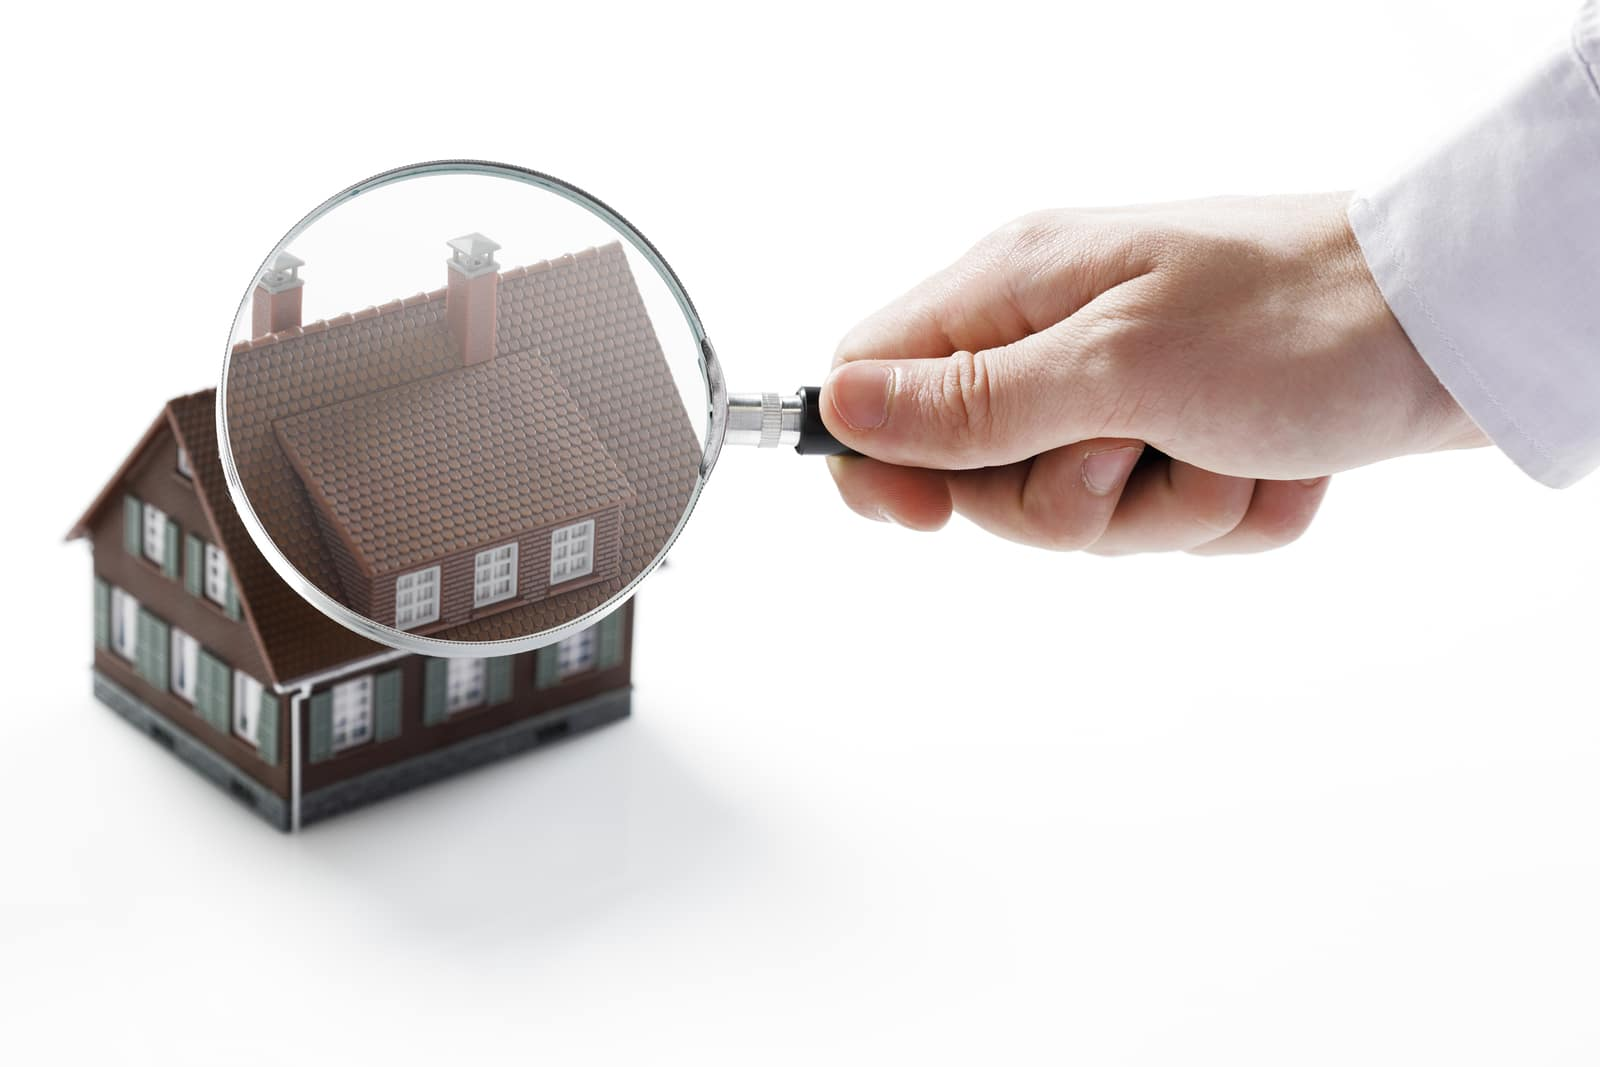 Home Buyer's Guide to Home Inspections